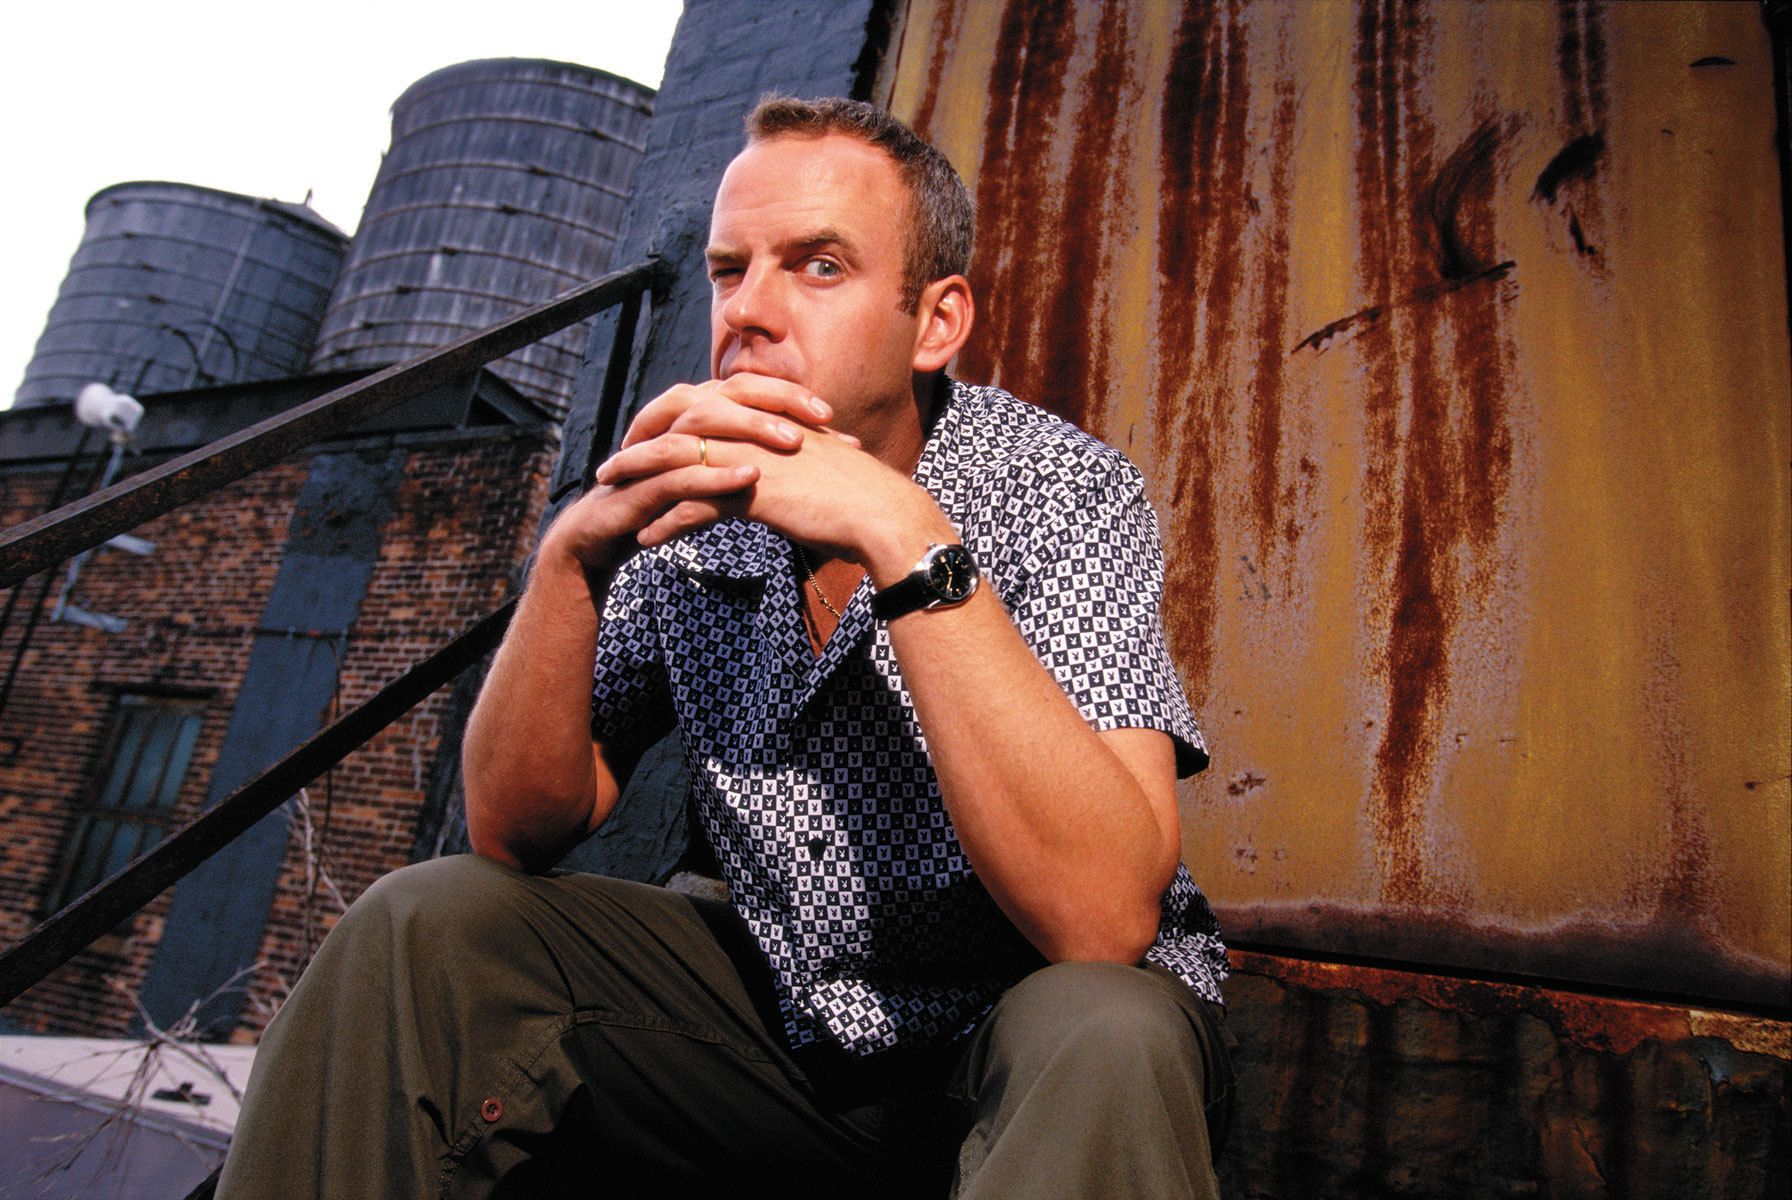 Fatboy Slim, aka Norman Cook